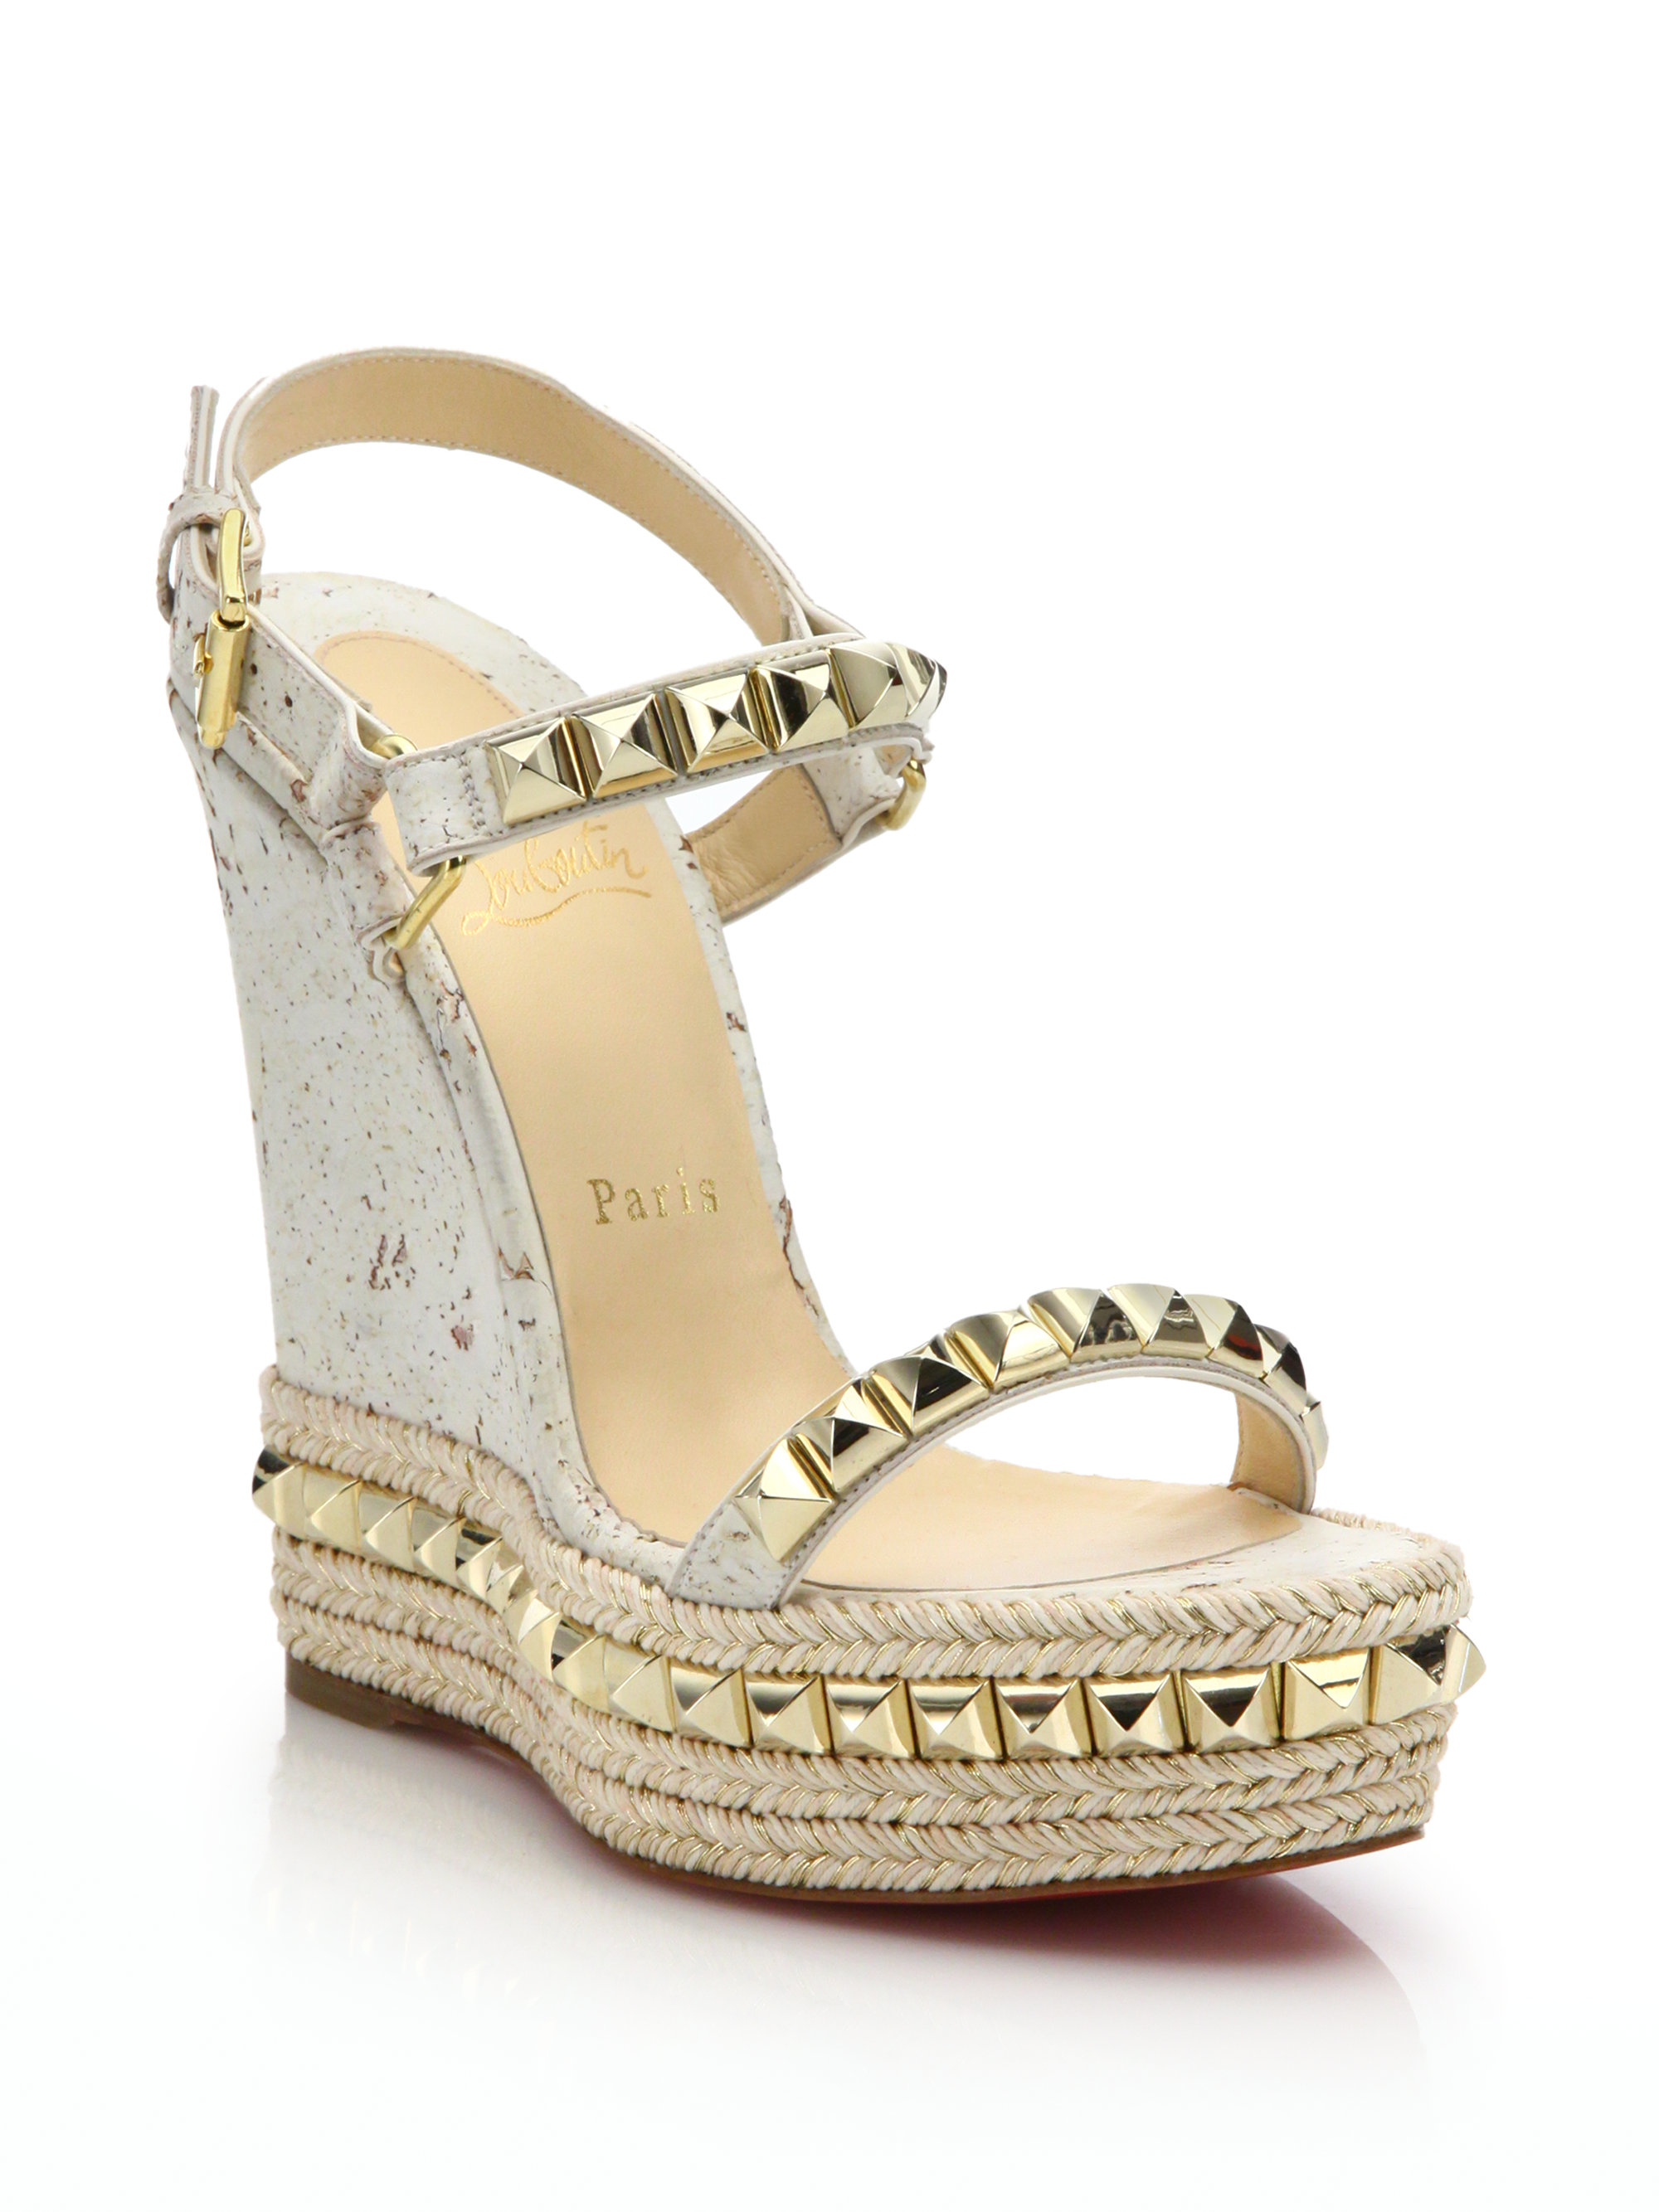 christian louboutin copy shoes - Christian louboutin Cork & Leather Platform Wedge Sandals in White ...